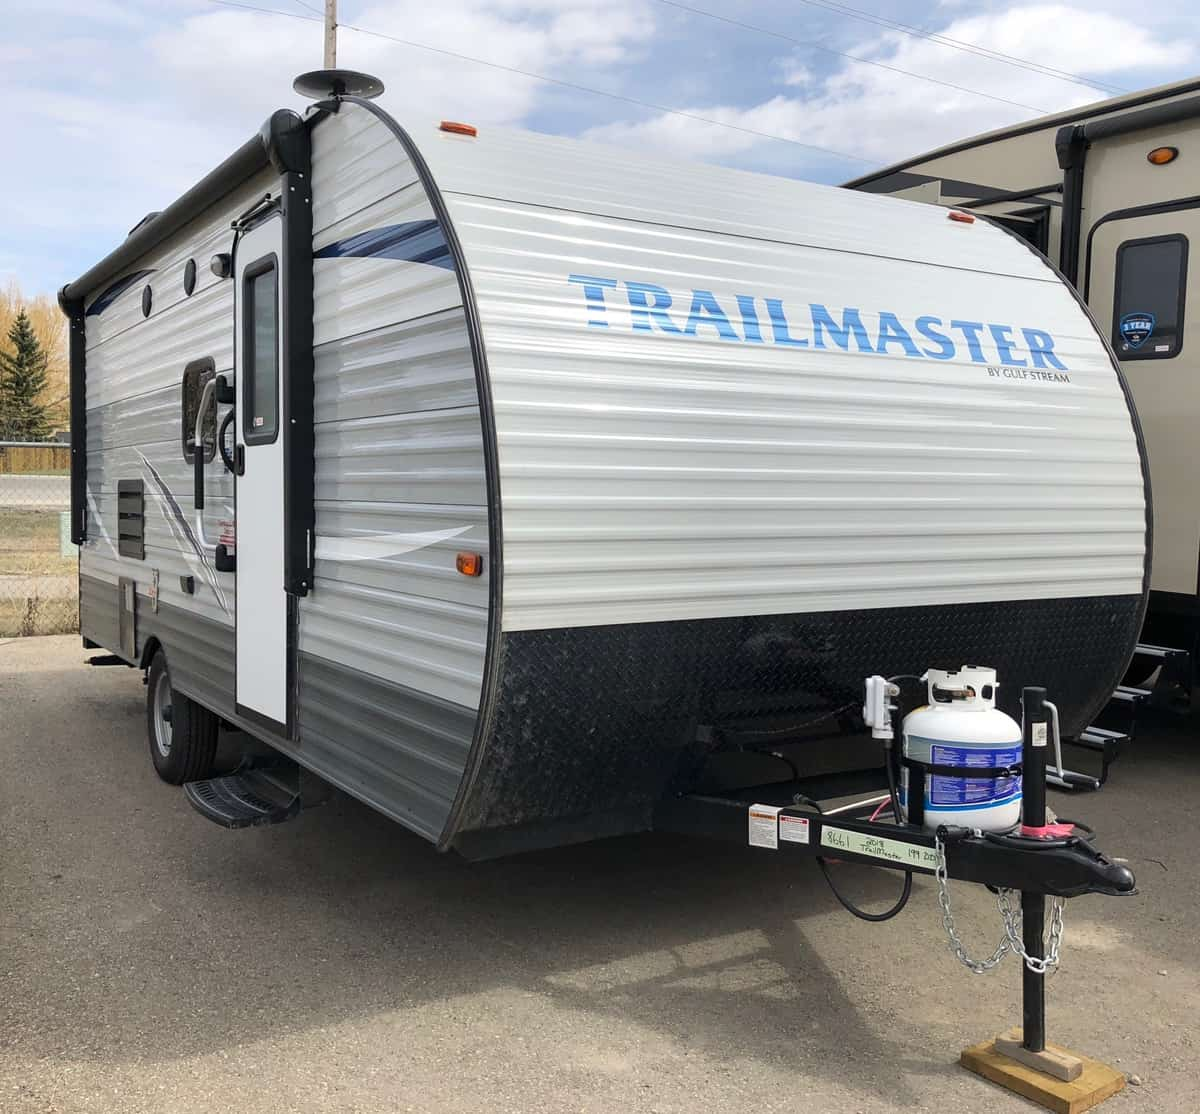 NEW 2018 Gulf Stream TRAIL MASTER 199 DD